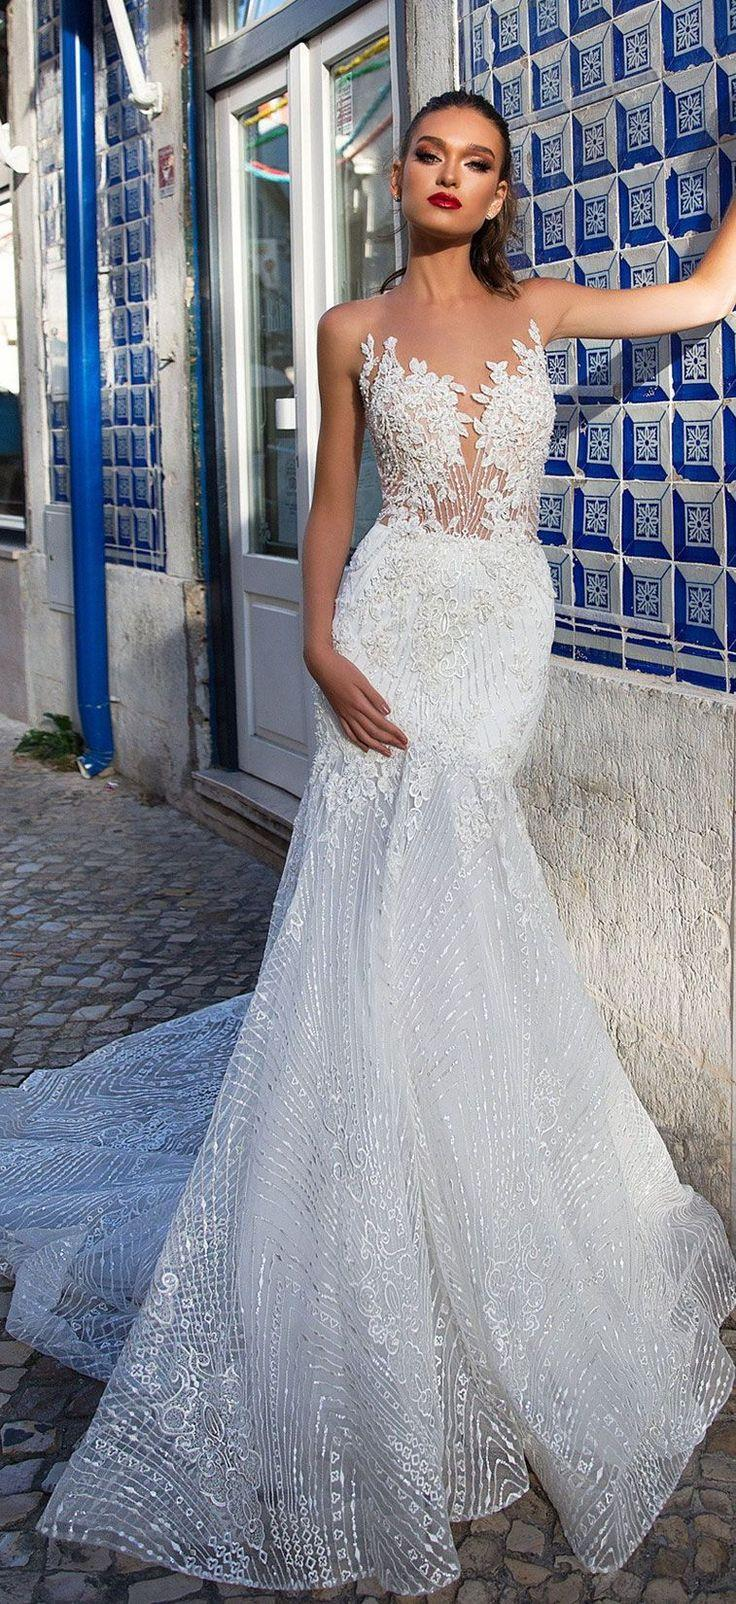 Mariage - Milla Nova Wedding Dress Inspiration